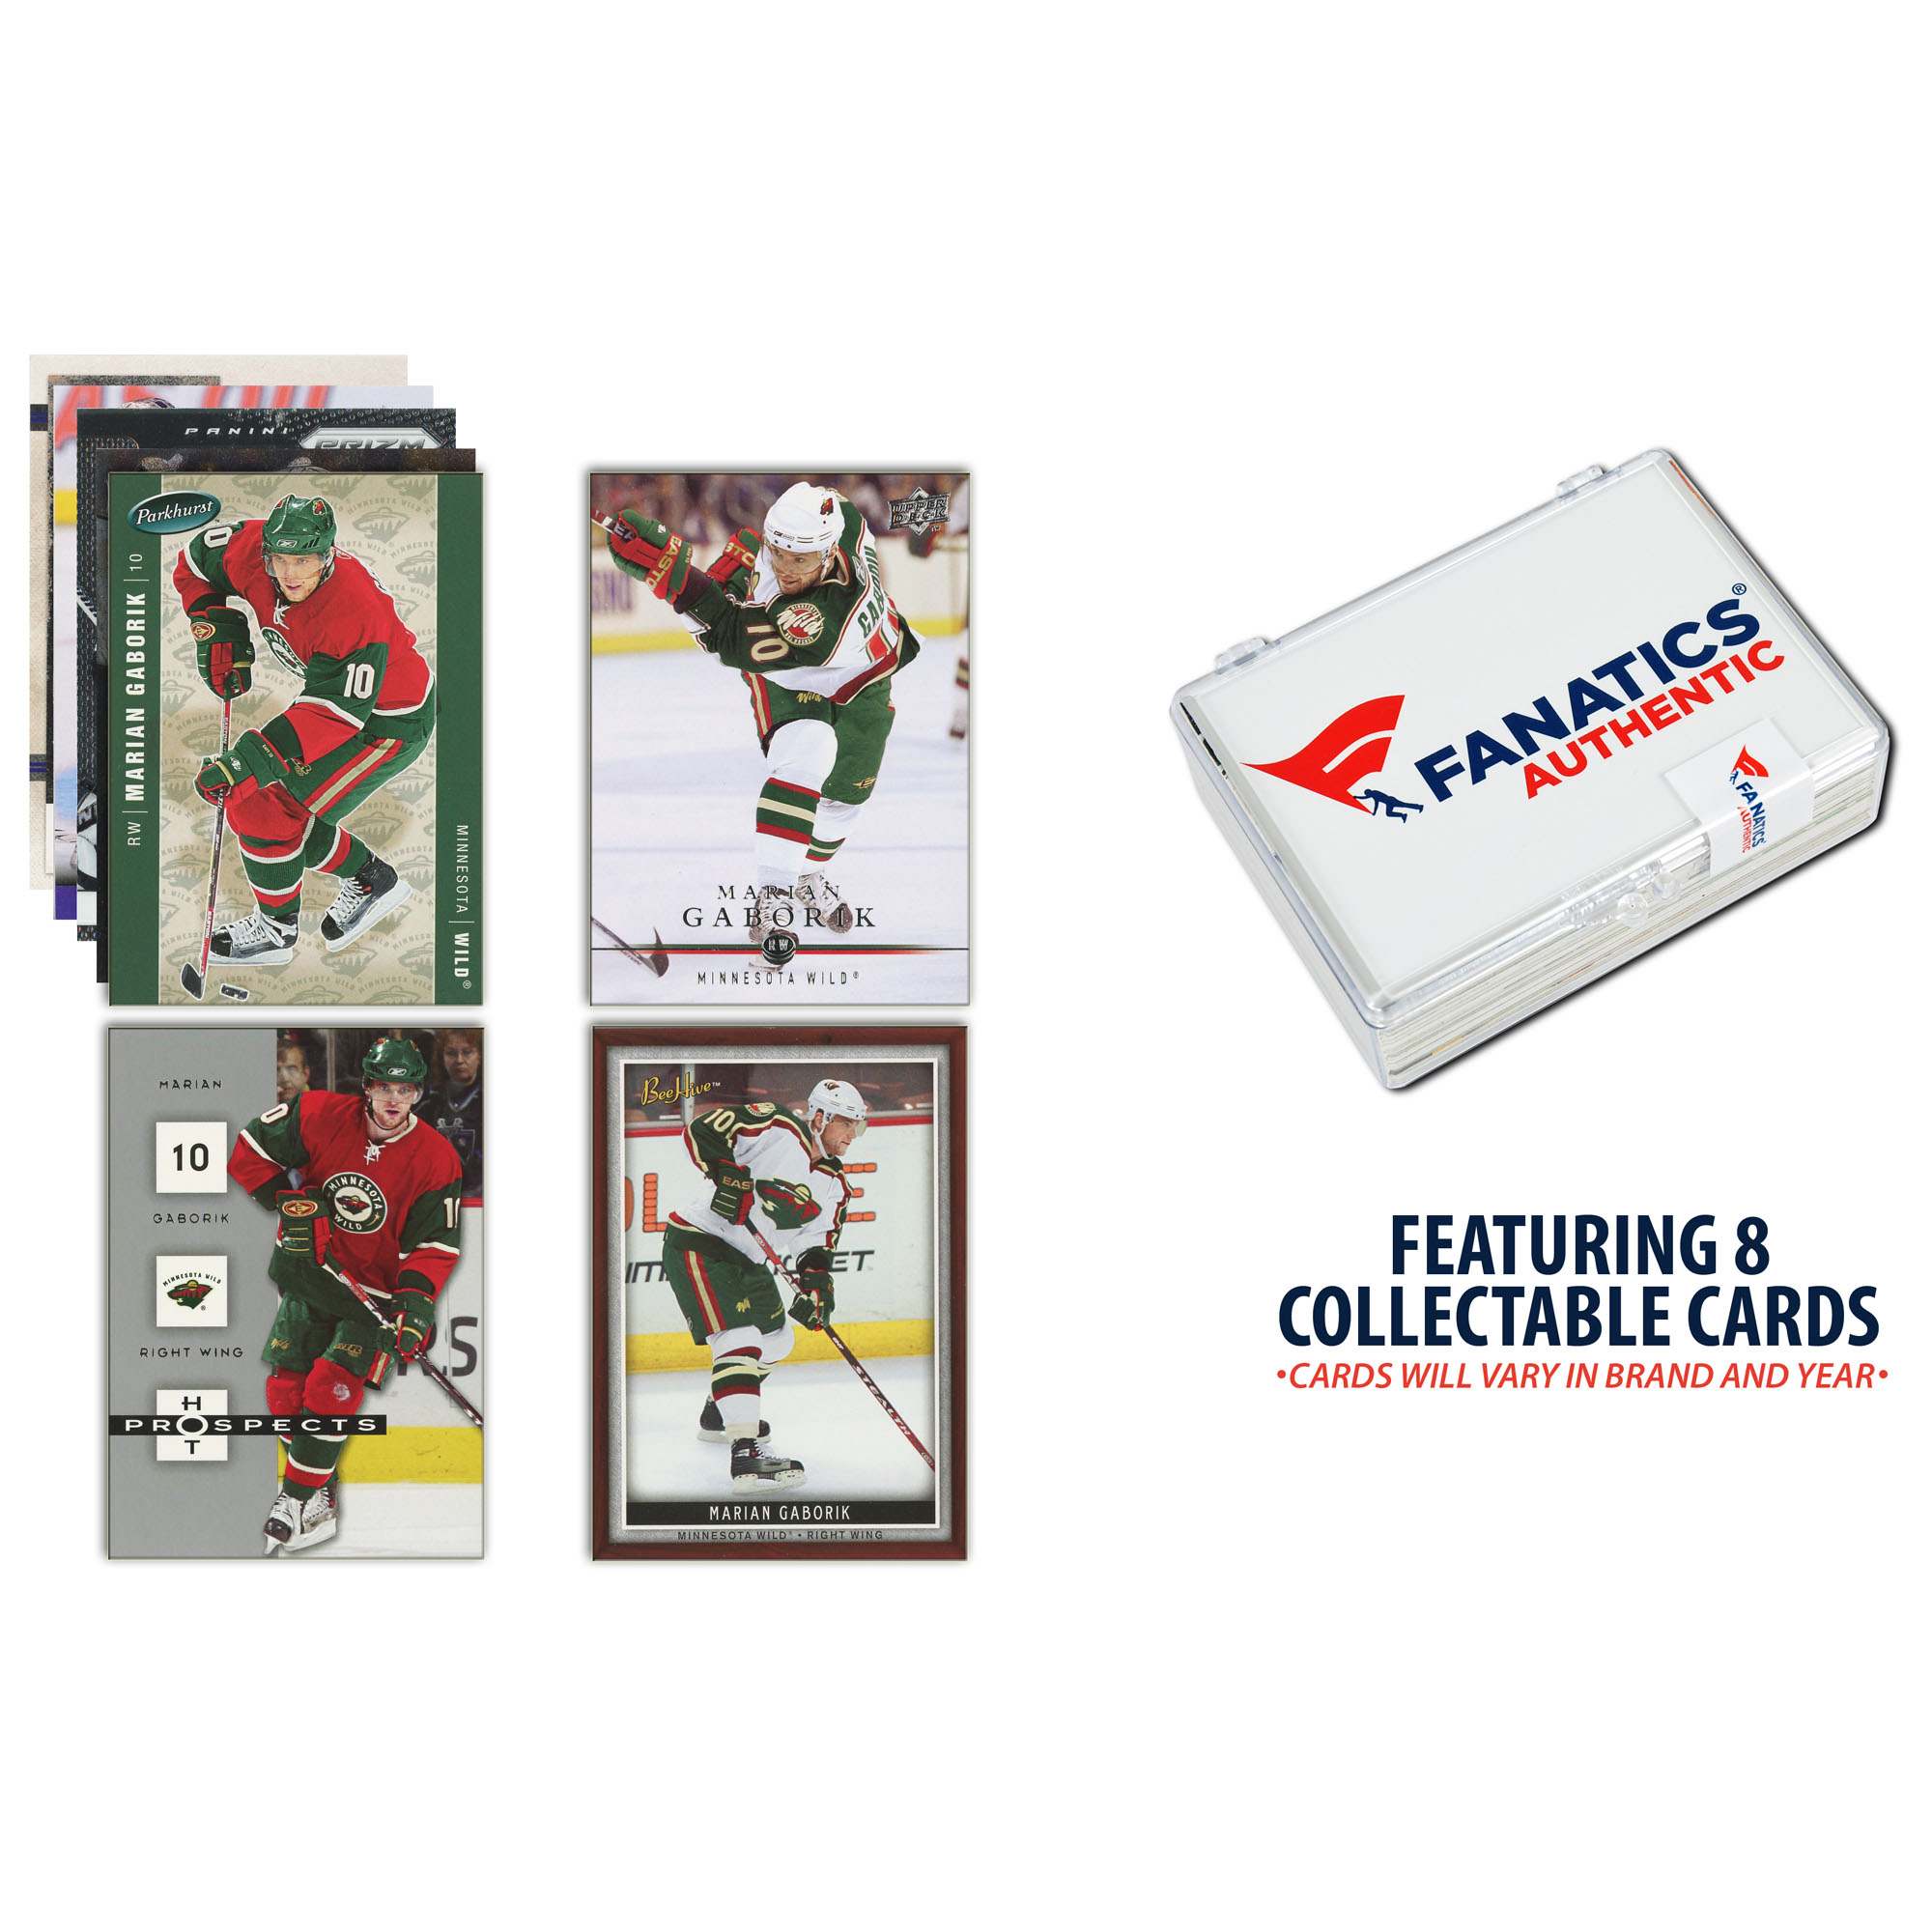 Marian Gaborik Minnesota Wild Unsigned 8 Card Lot - No Size